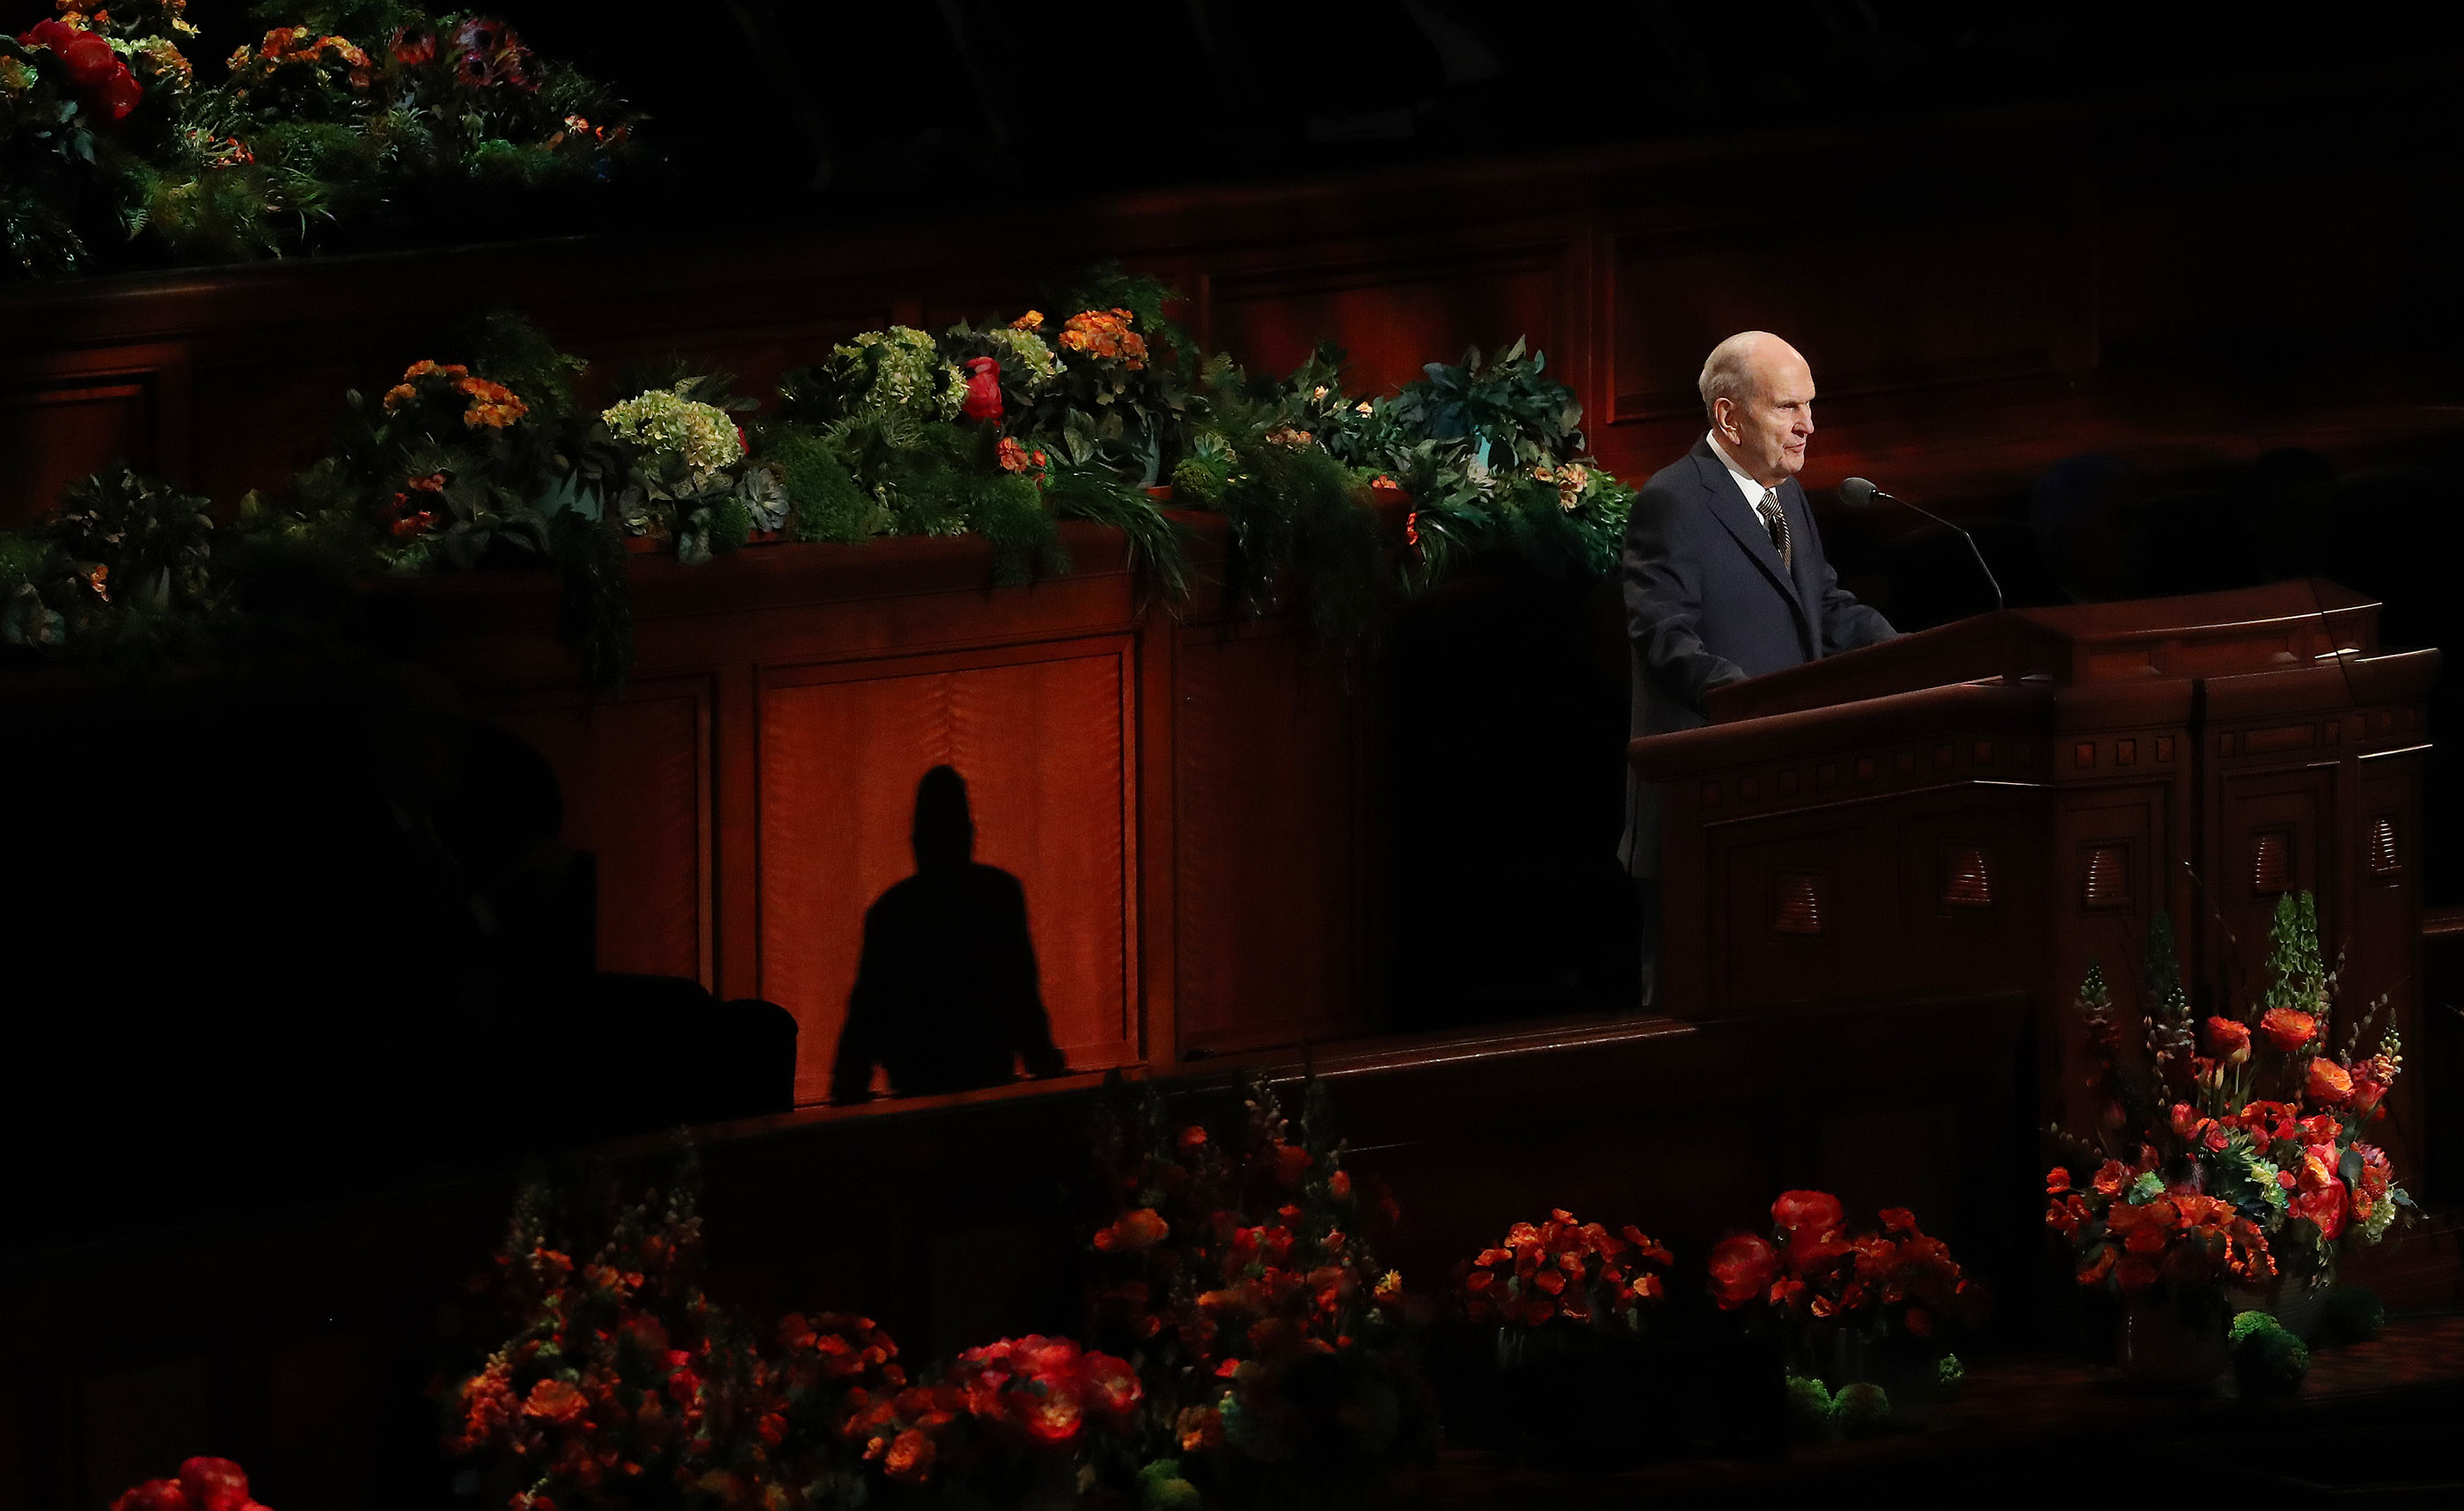 President Russell M. Nelson of The Church of Jesus Christ of Latter-day Saints speaks at the close of the 189th Annual General Conference of The Church of Jesus Christ of Latter-day Saints in Salt Lake City on Sunday, April 7, 2019.